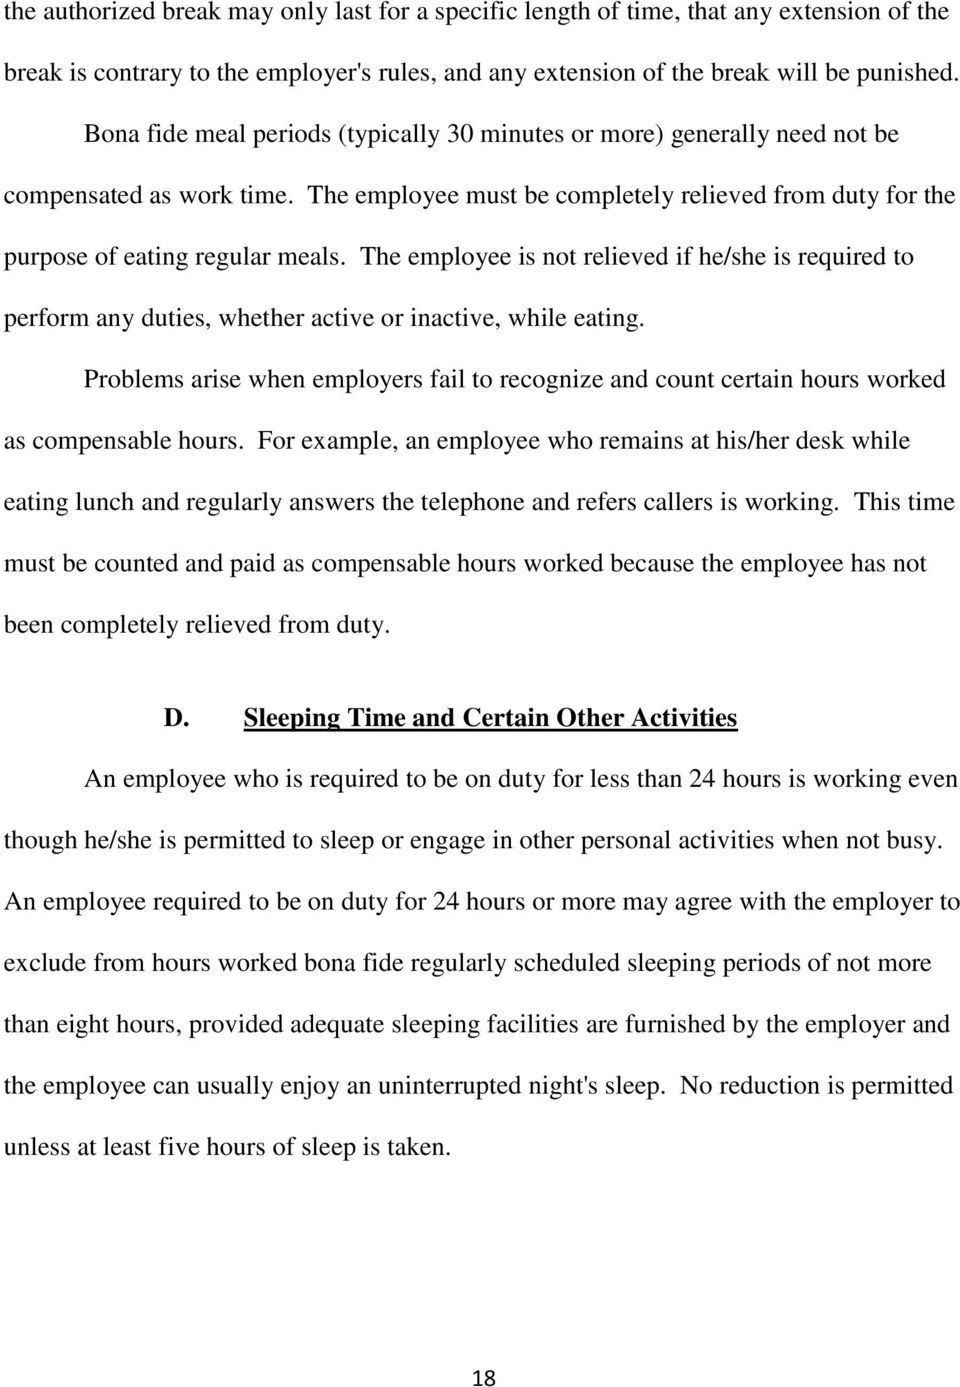 The employee is not relieved if he/she is required to perform any duties, whether active or inactive, while eating.